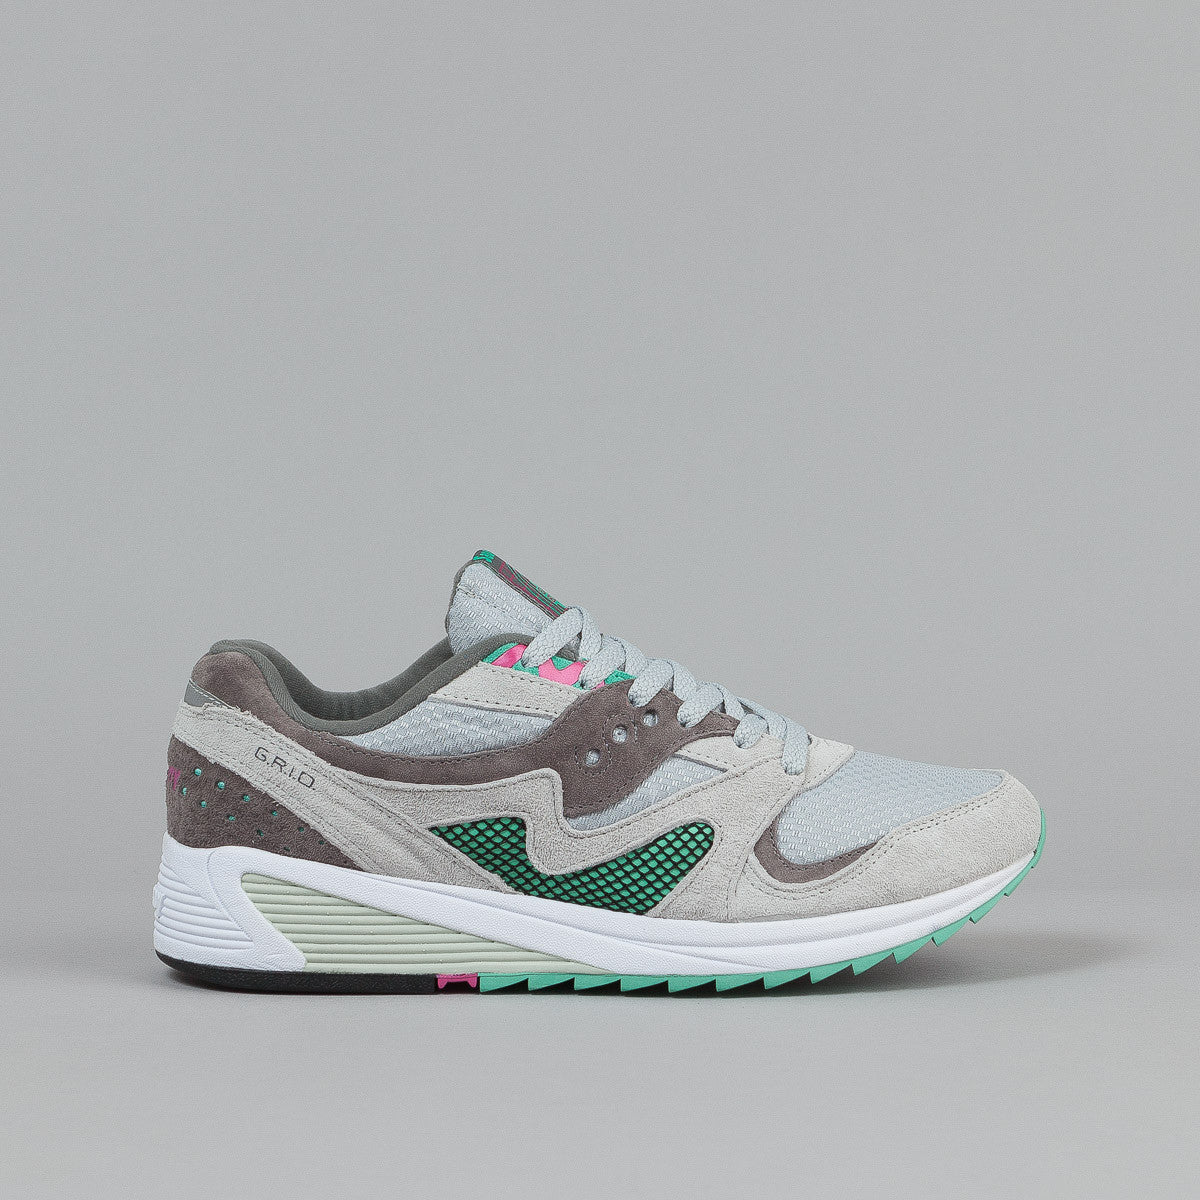 Saucony Grid 8000 CL Shoes